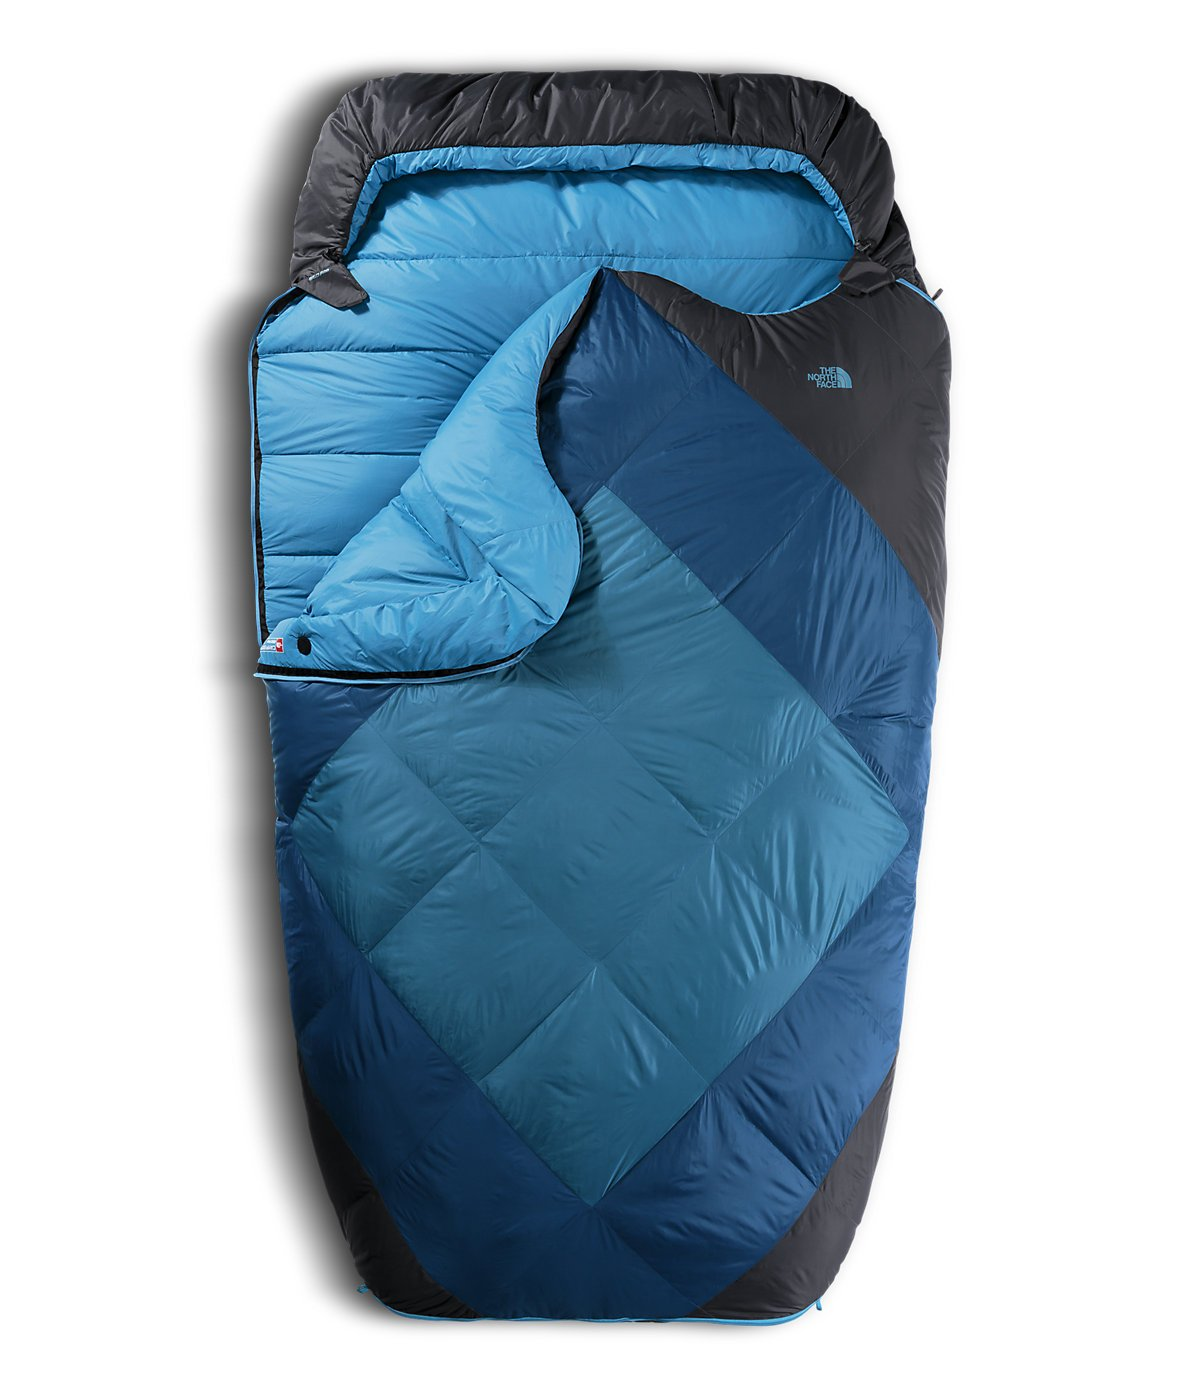 0f825b1db The North Face Campforter Double 20 Sleeping Bag Rental